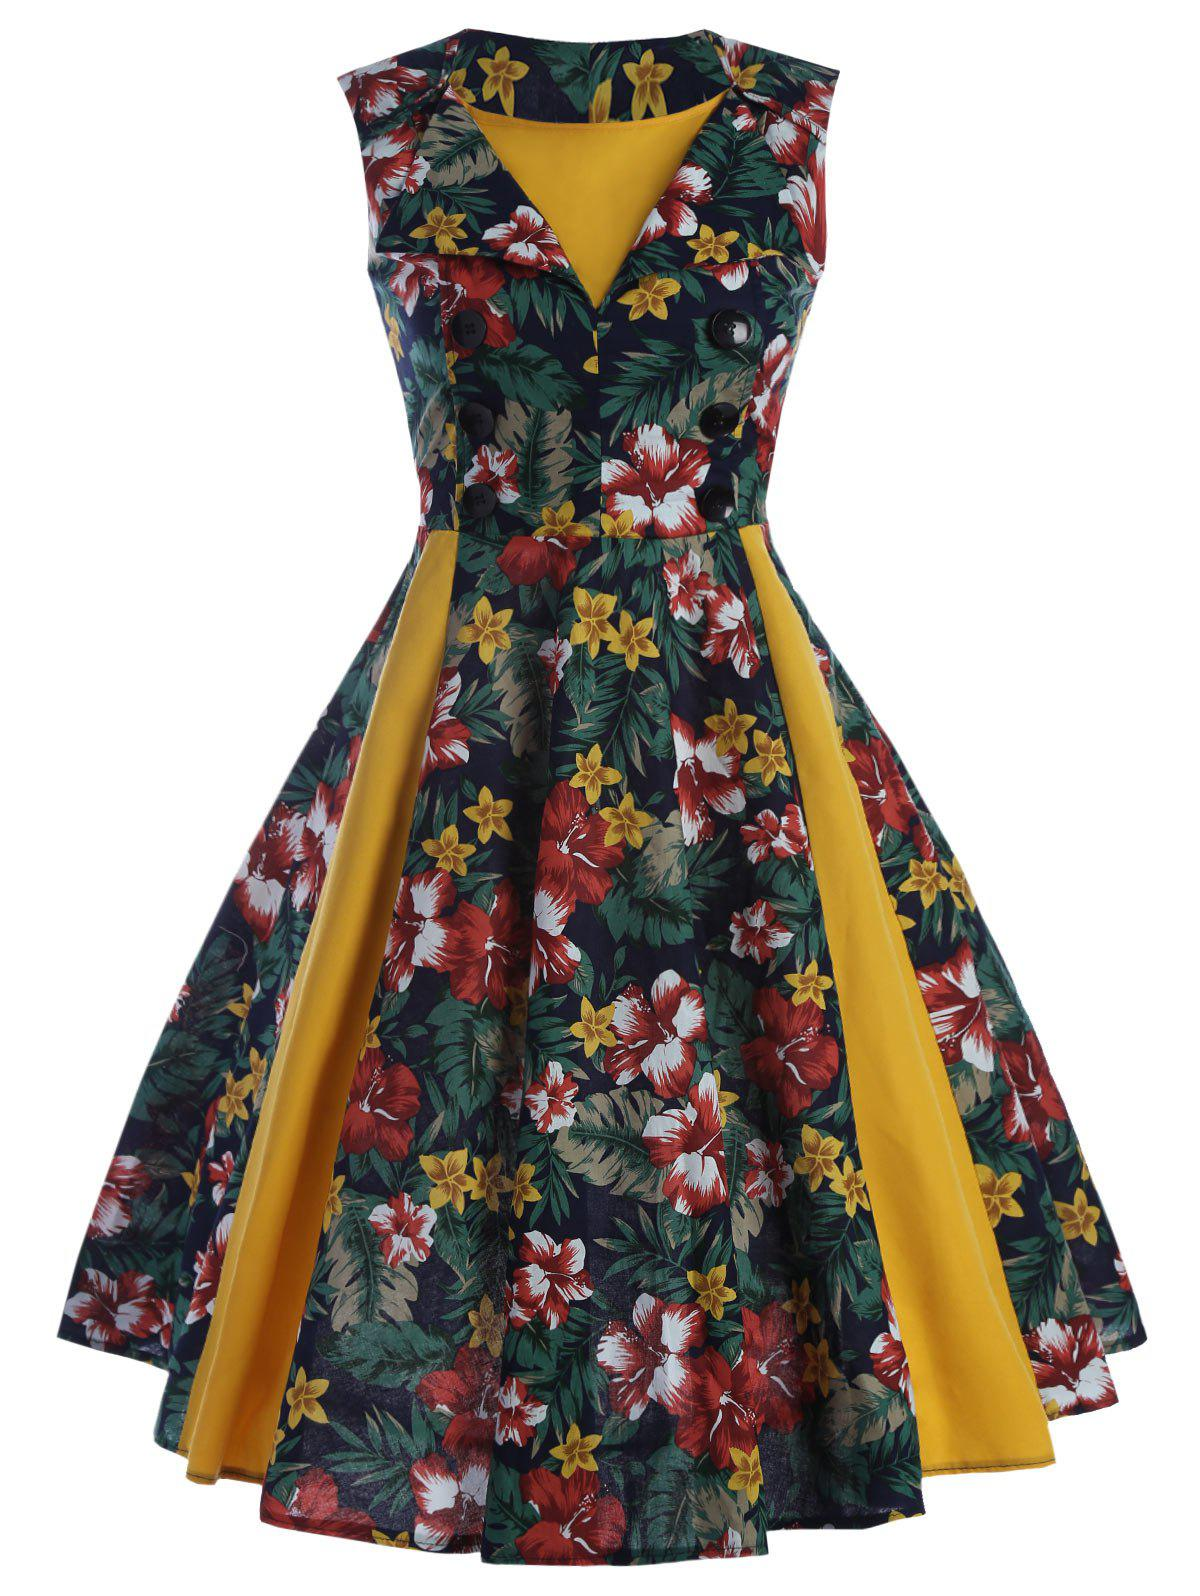 Printed Front Buttoned Sleeveless Vintage Dress - YELLOW M